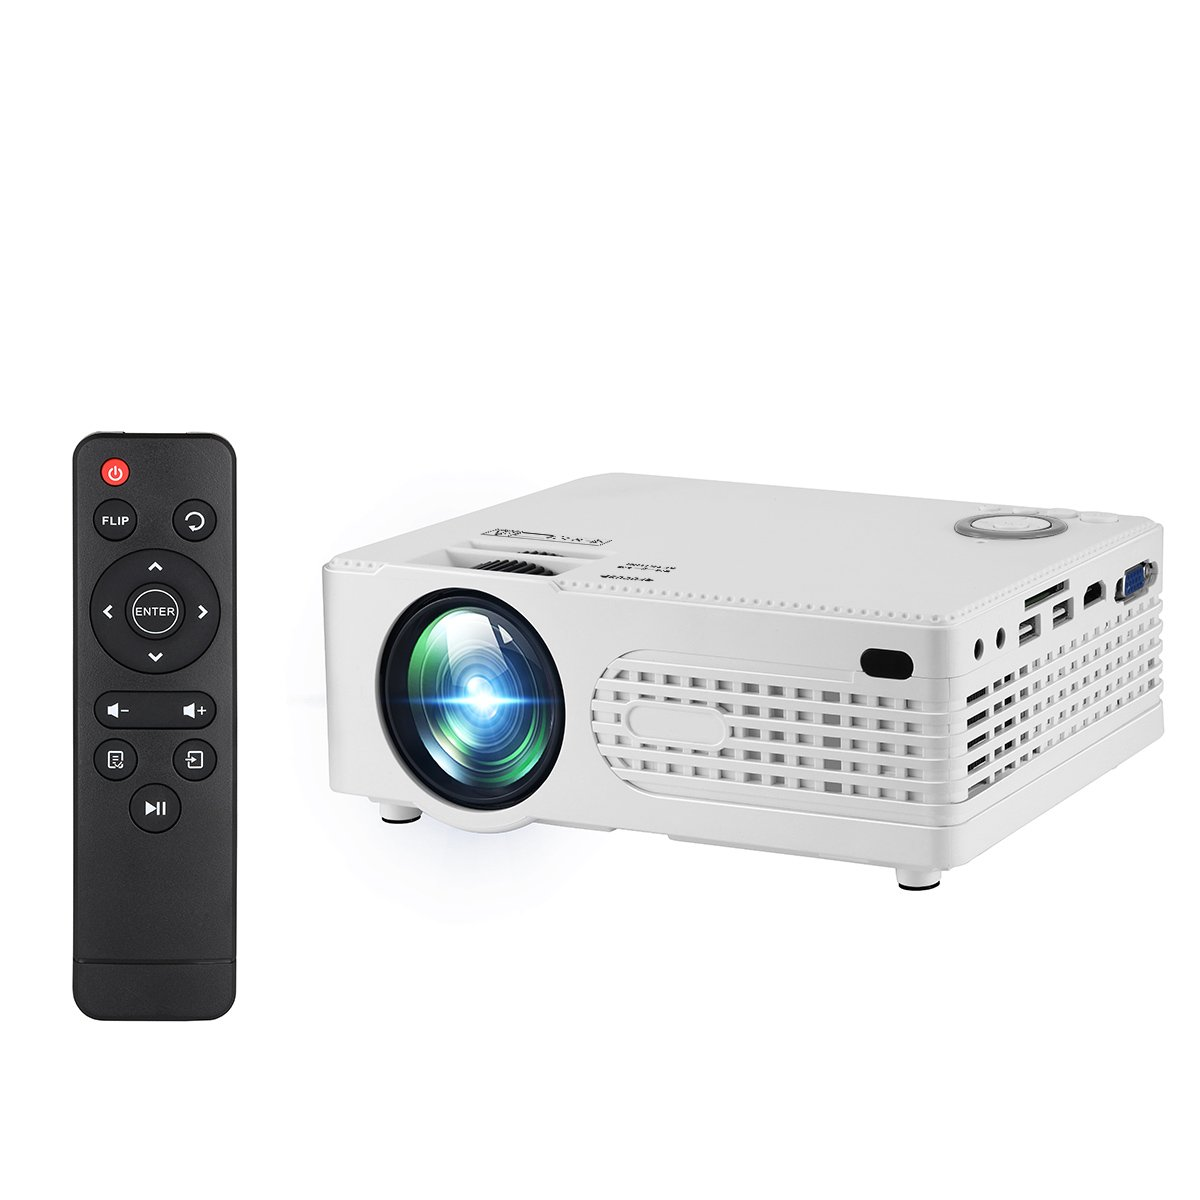 4'' 2000 Lumens LED Video Projector, AOZBZ HD 1080P LCD LED Home Theater Video Multimedia Projector Support 1080P HDMI USB SD Card VGA AV for Outdoor Indoor Home Cinema TV Laptop Game